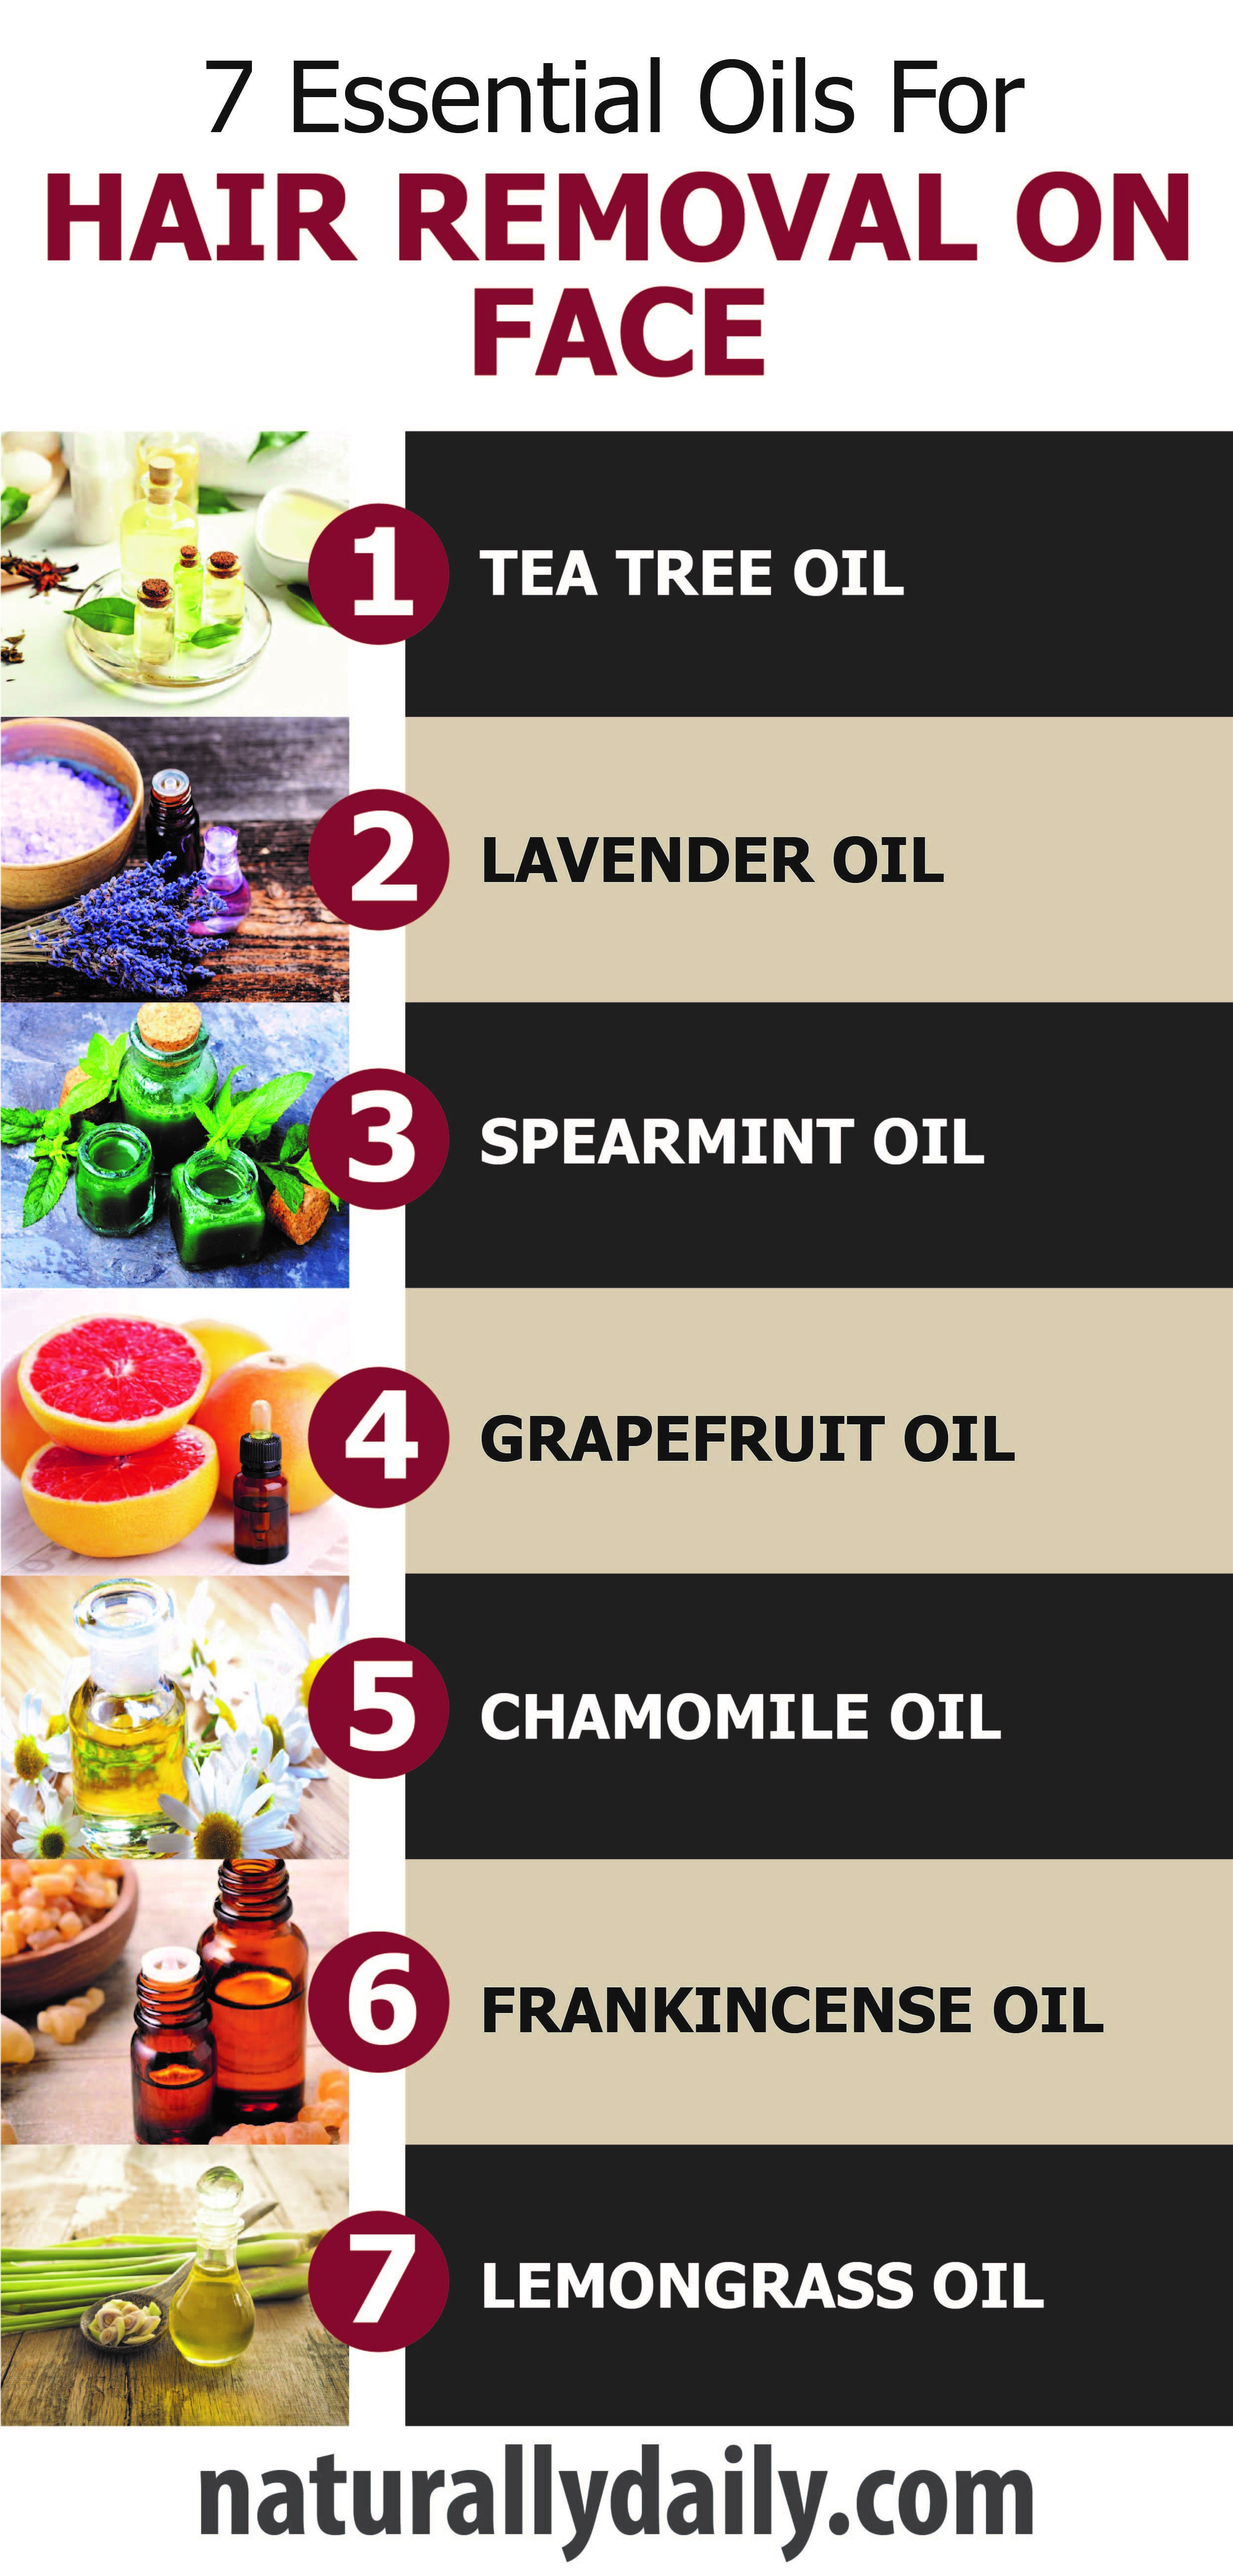 7 Essential Oils for Hair Removal on Face #hairremoval